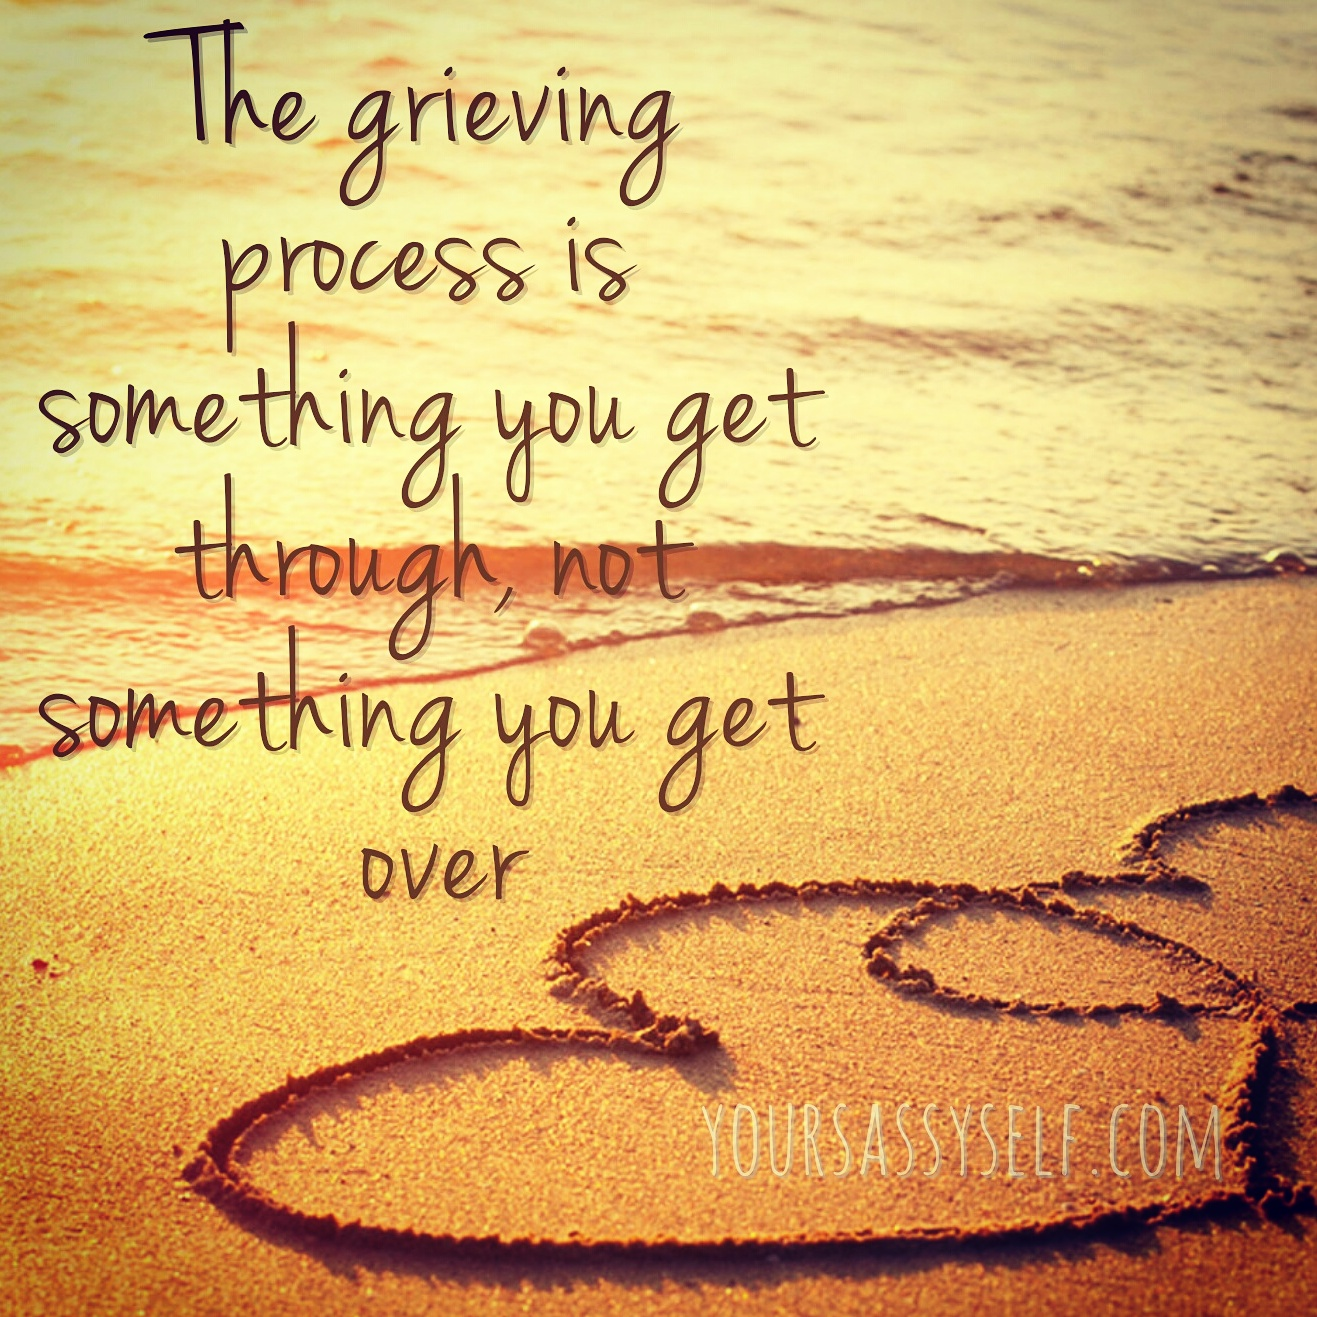 The grieving process is something you get through, not over - yoursassyself.com